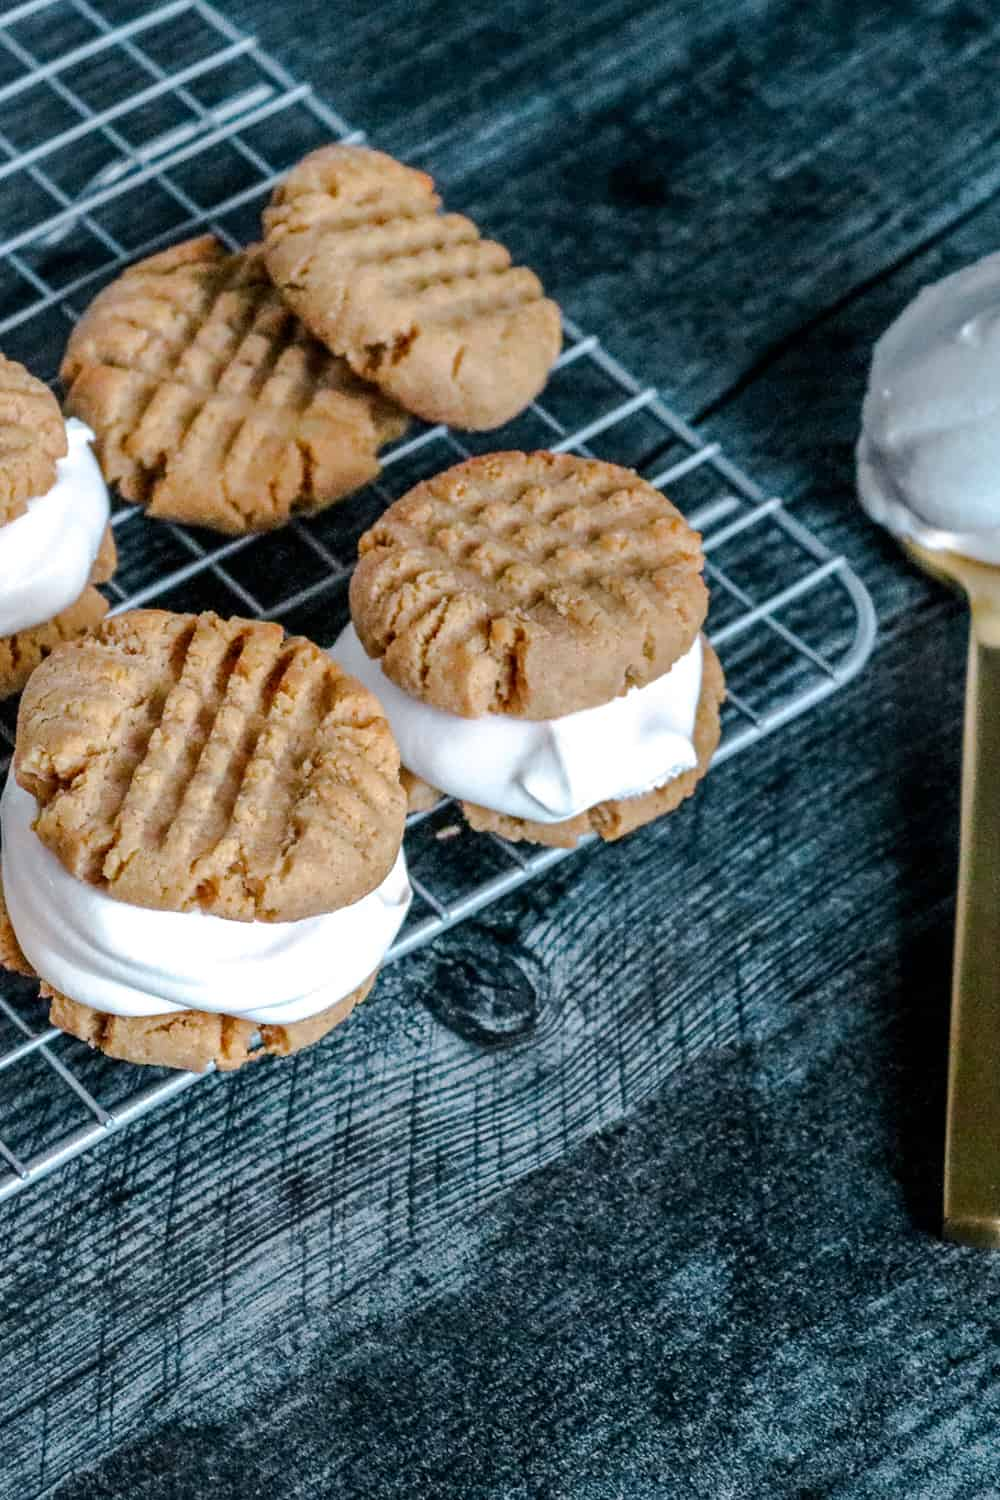 Close up of cookies with ice cream filling, to demonstrate keto friendly dessert